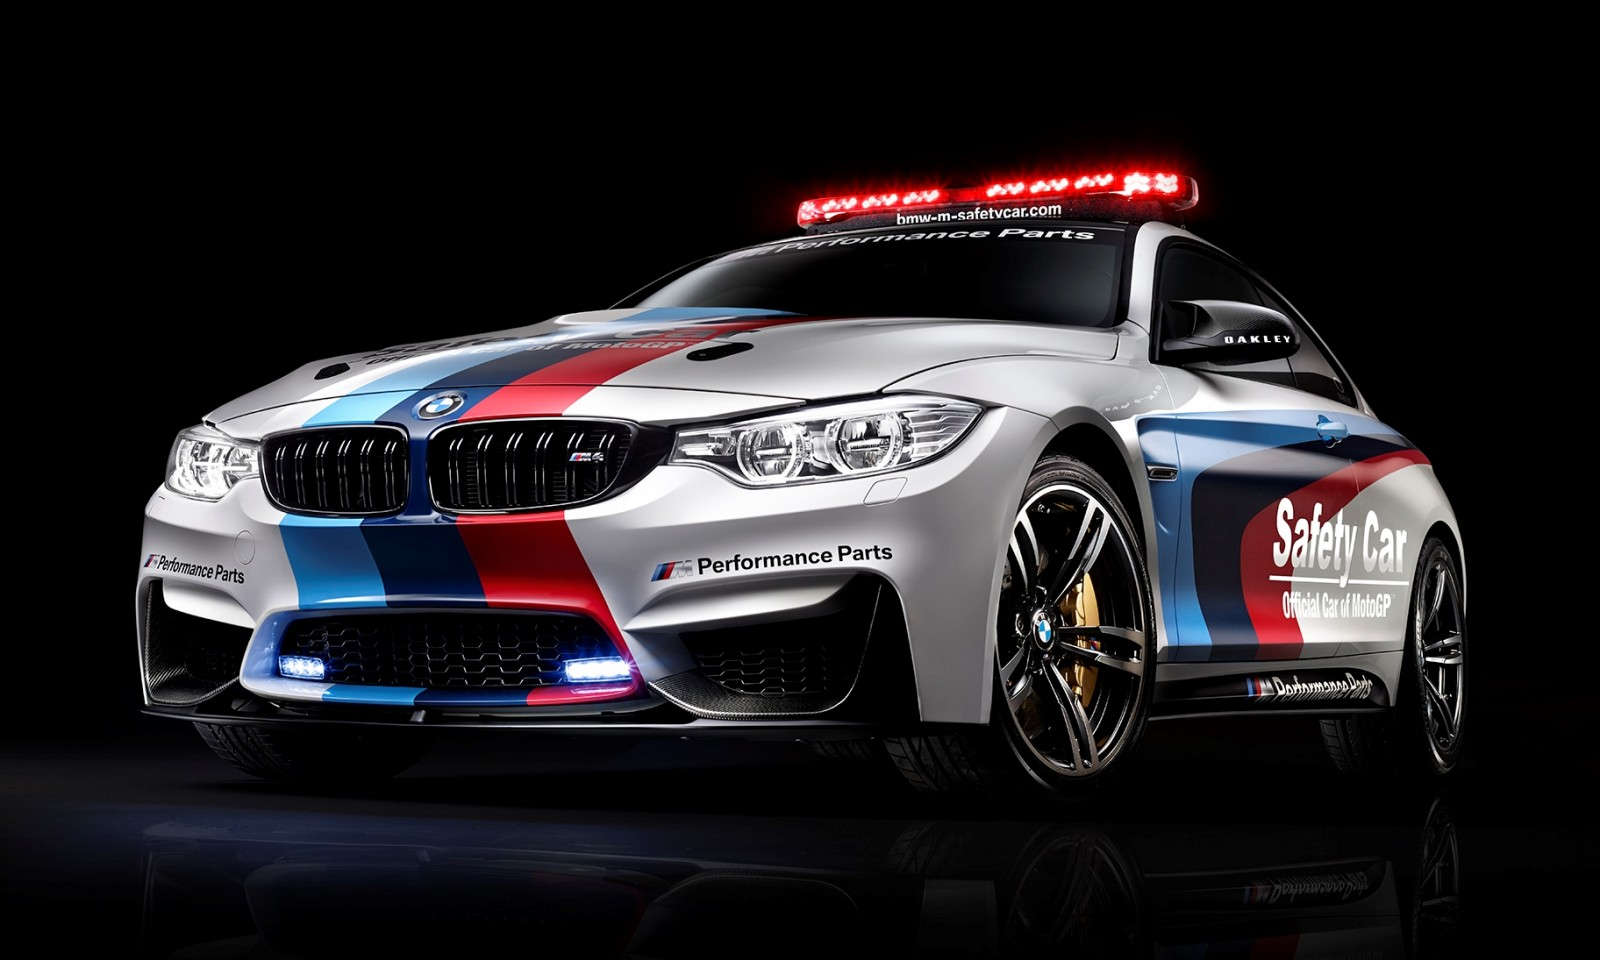 2015 BMW M4 Safety Car 6